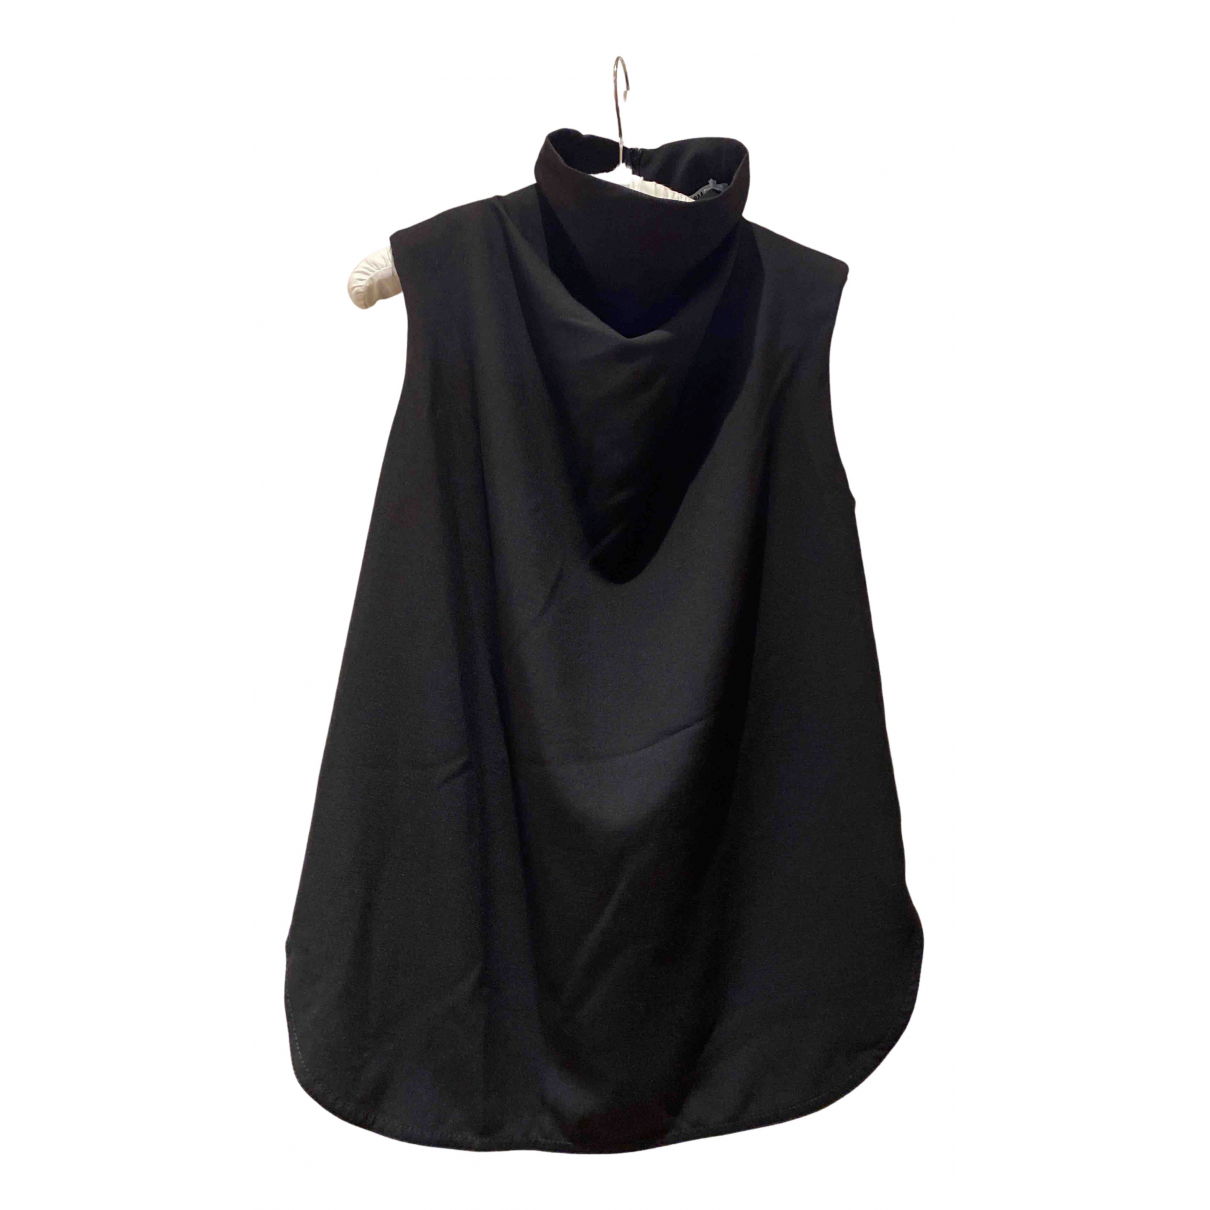 Camilla And Marc N Black  top for Women 6 UK